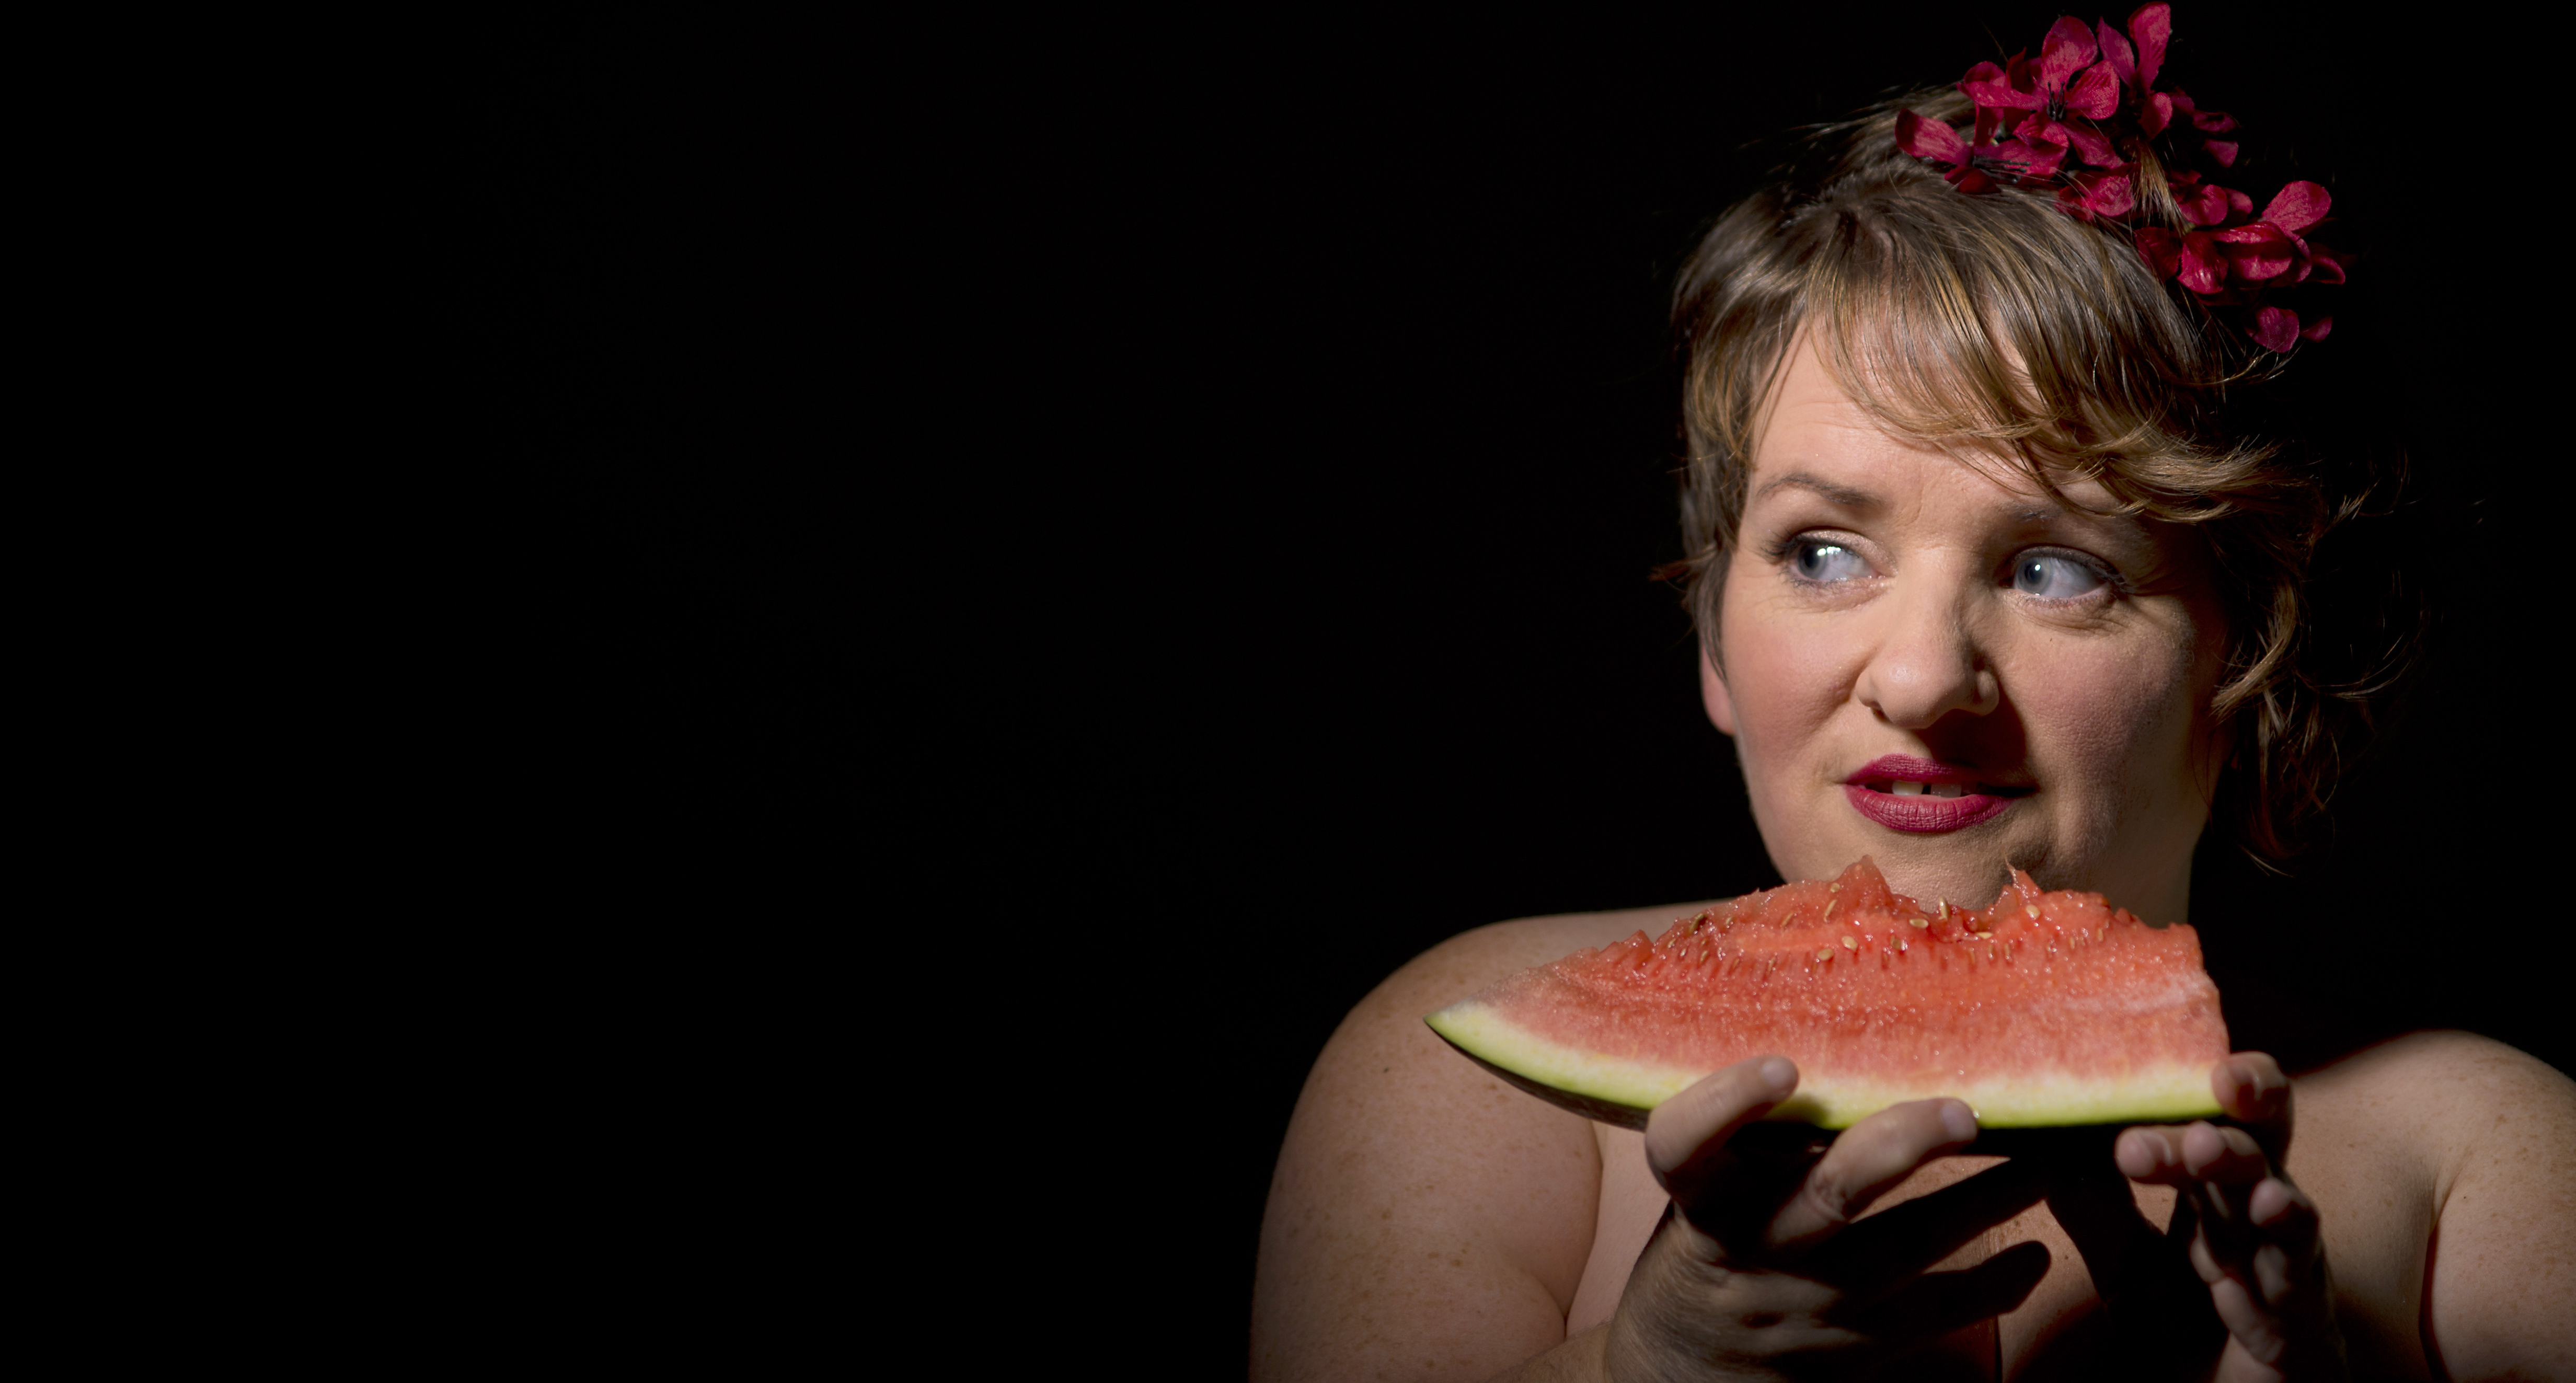 Caroline Bowditch eating a slice of watermelon